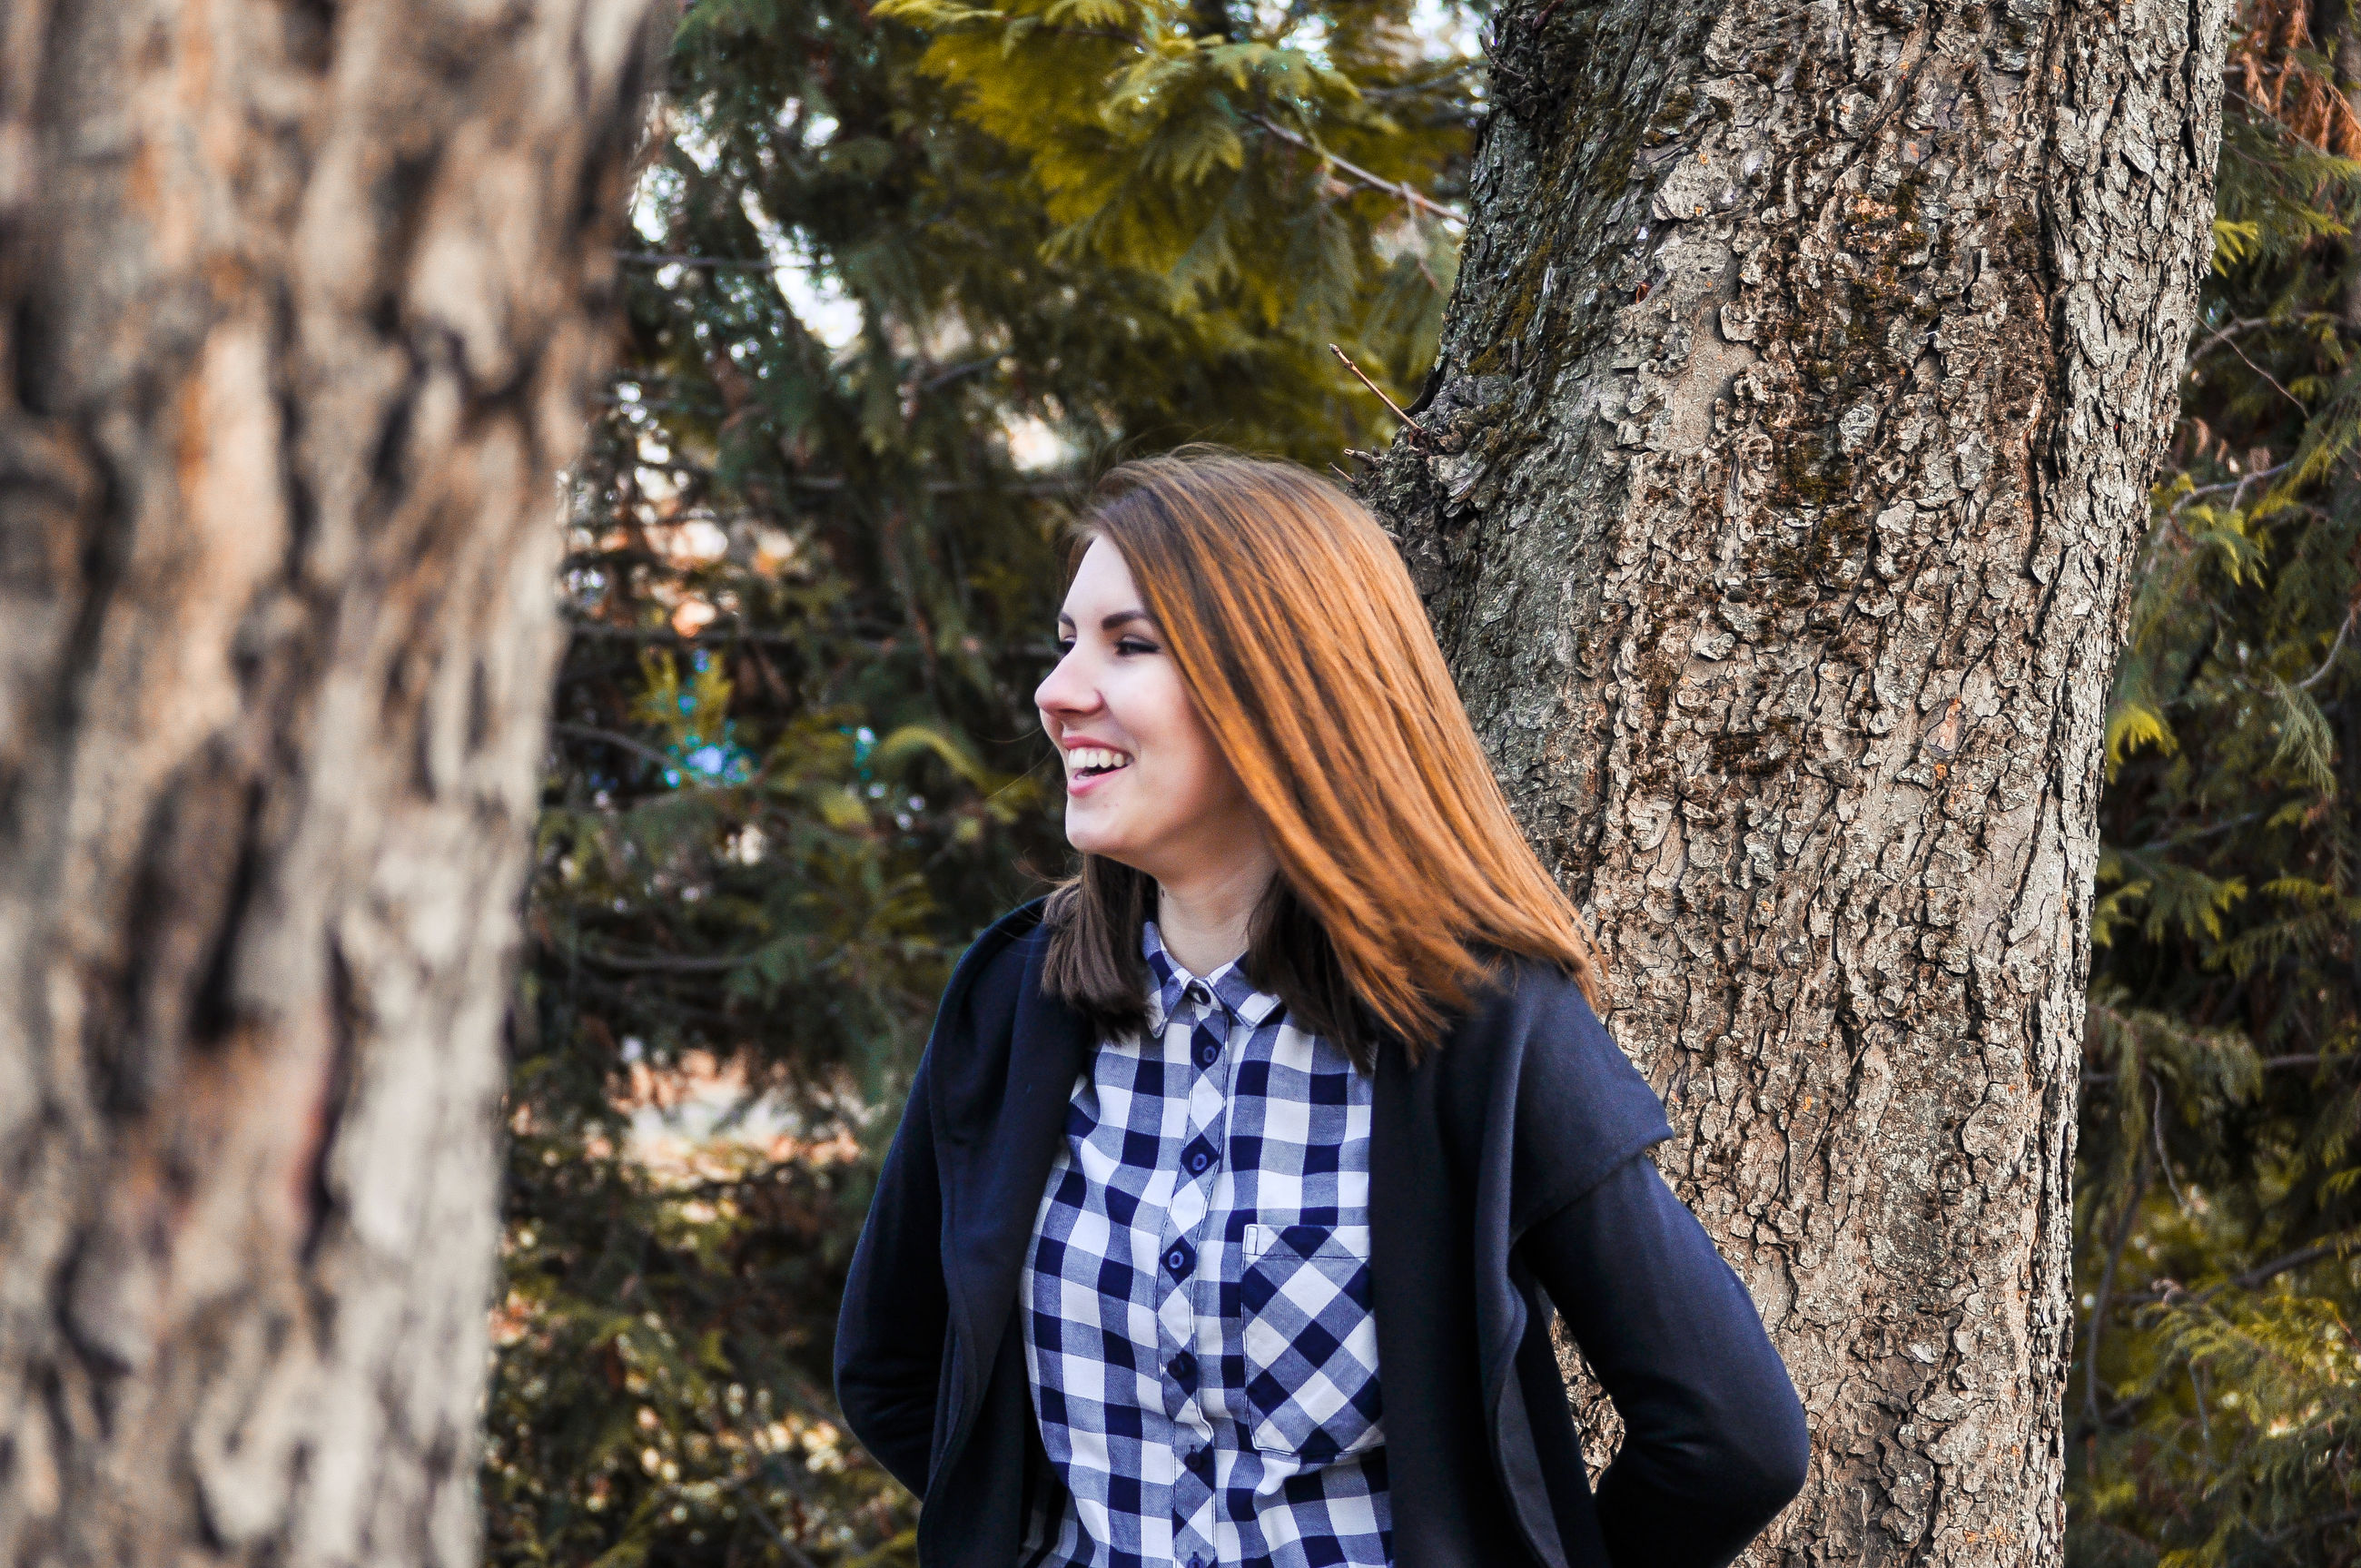 young adult, lifestyles, tree, leisure activity, young women, casual clothing, person, standing, long hair, three quarter length, waist up, forest, front view, tree trunk, focus on foreground, portrait, looking at camera